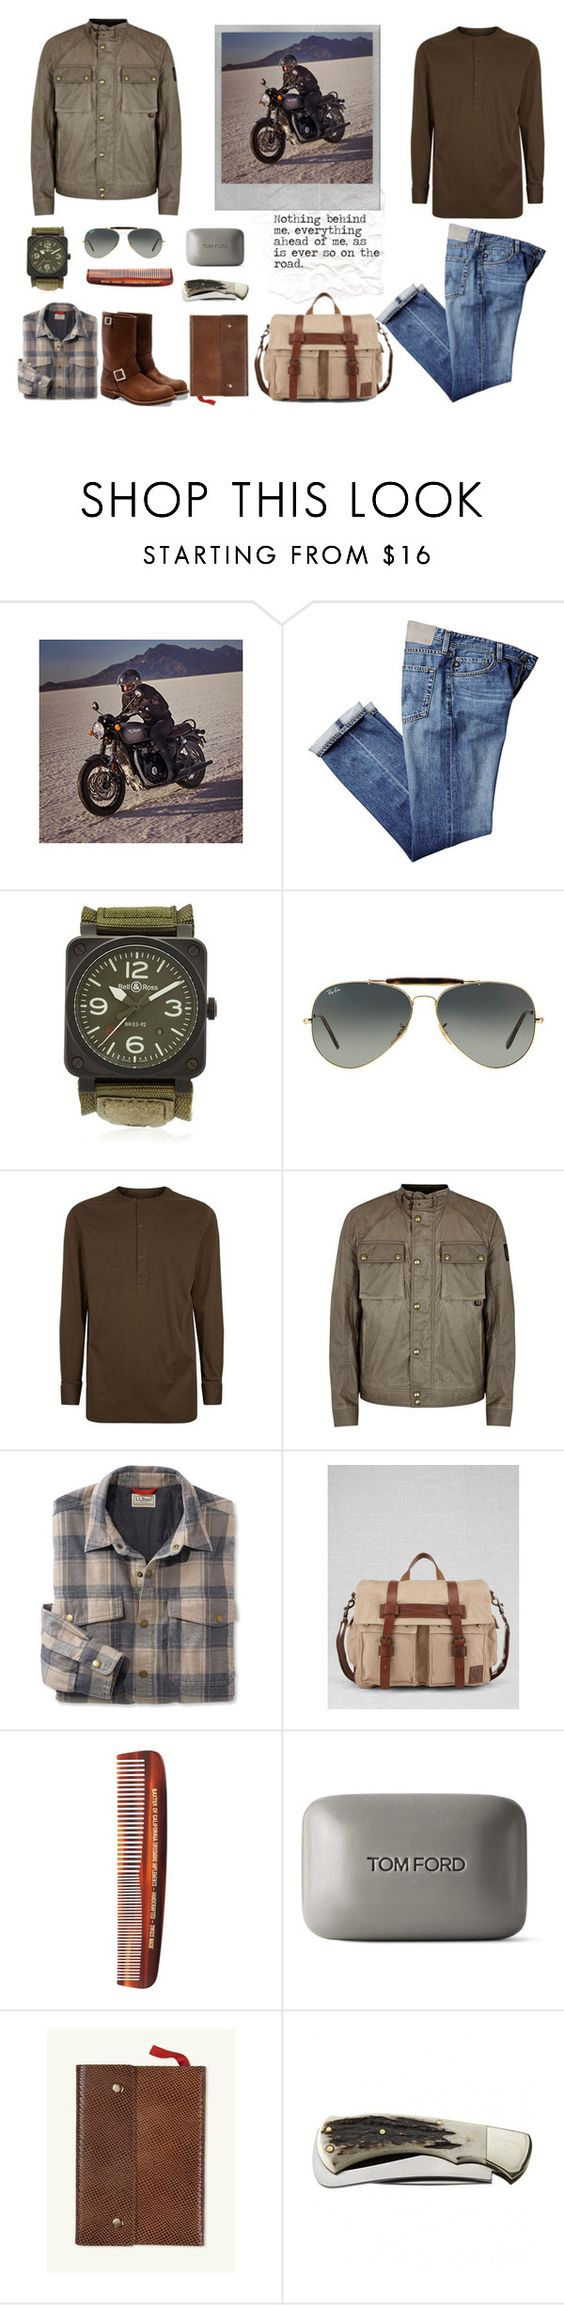 """""""On the Road"""" by maninaustin ❤ liked on Polyvore featuring Polaroid, Bell & Ross, Ray-Ban, Helmut Lang, Belstaff, L.L.Bean, Baxter of California, Tom Ford, men's fashion and menswear"""